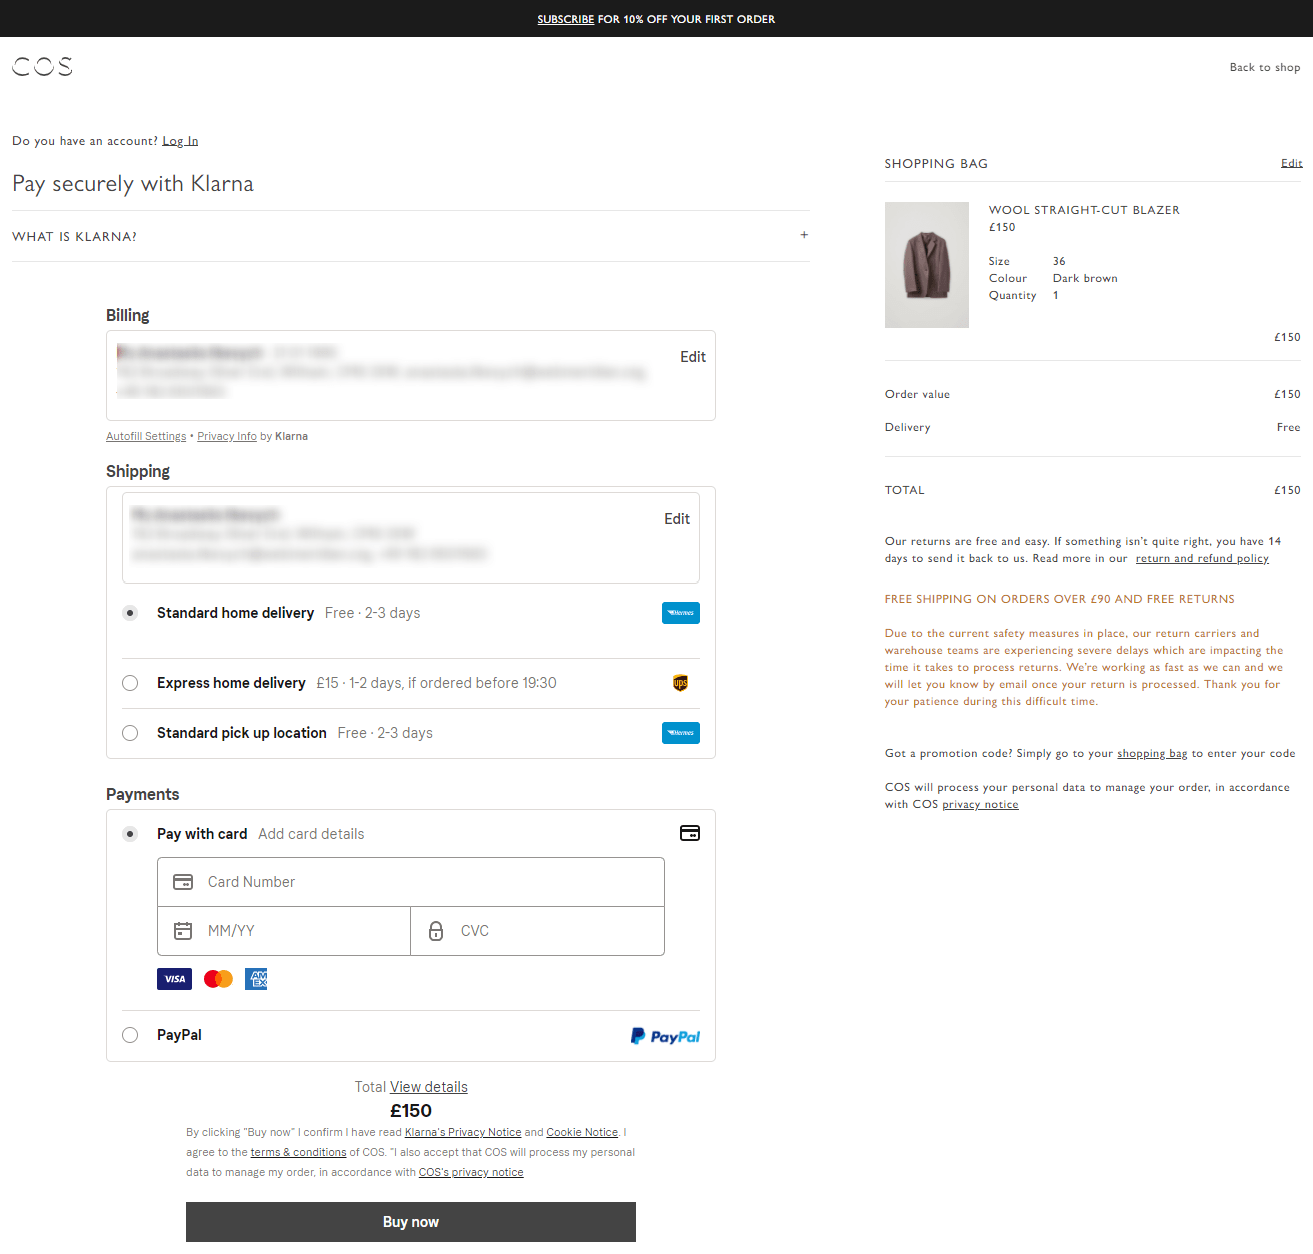 COS Checkout Page